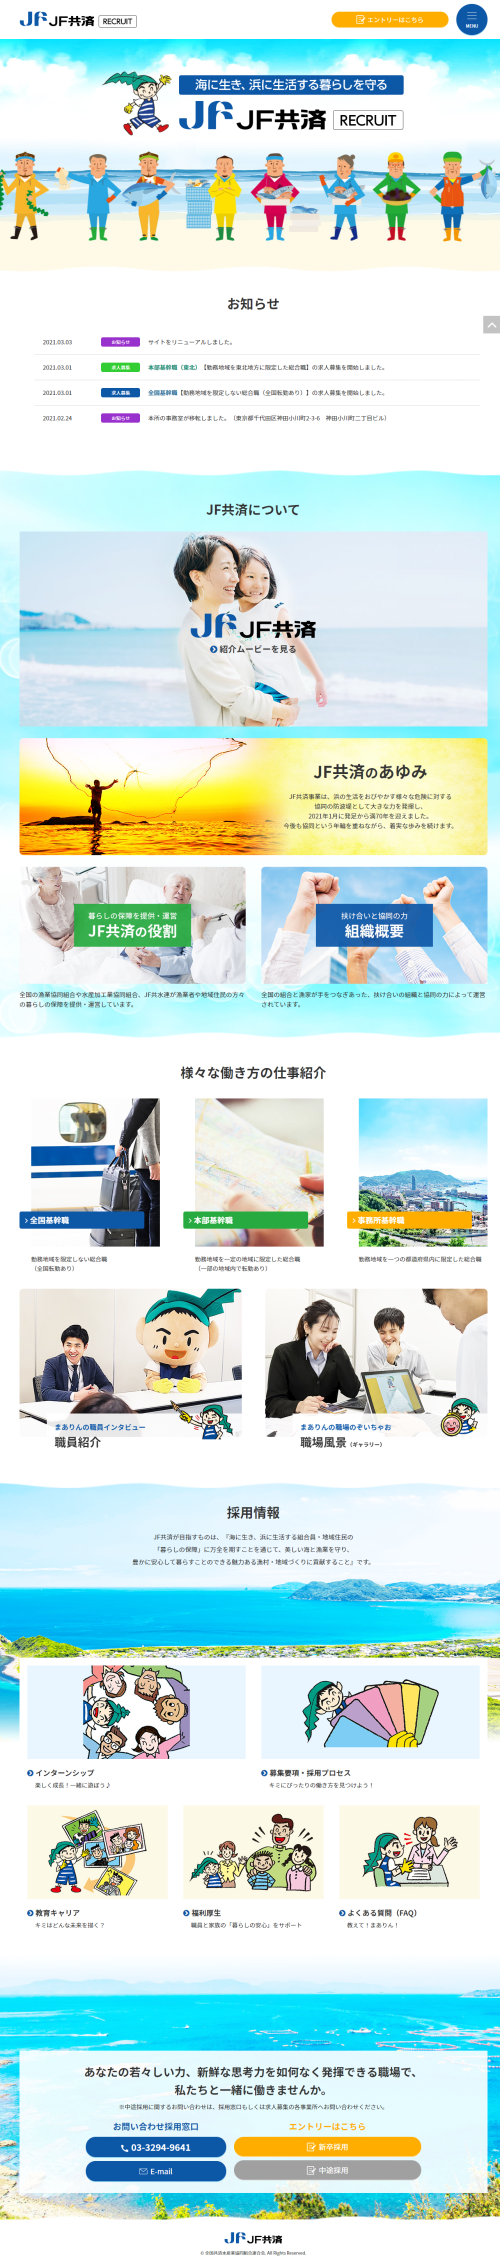 JF共水連採用サイト